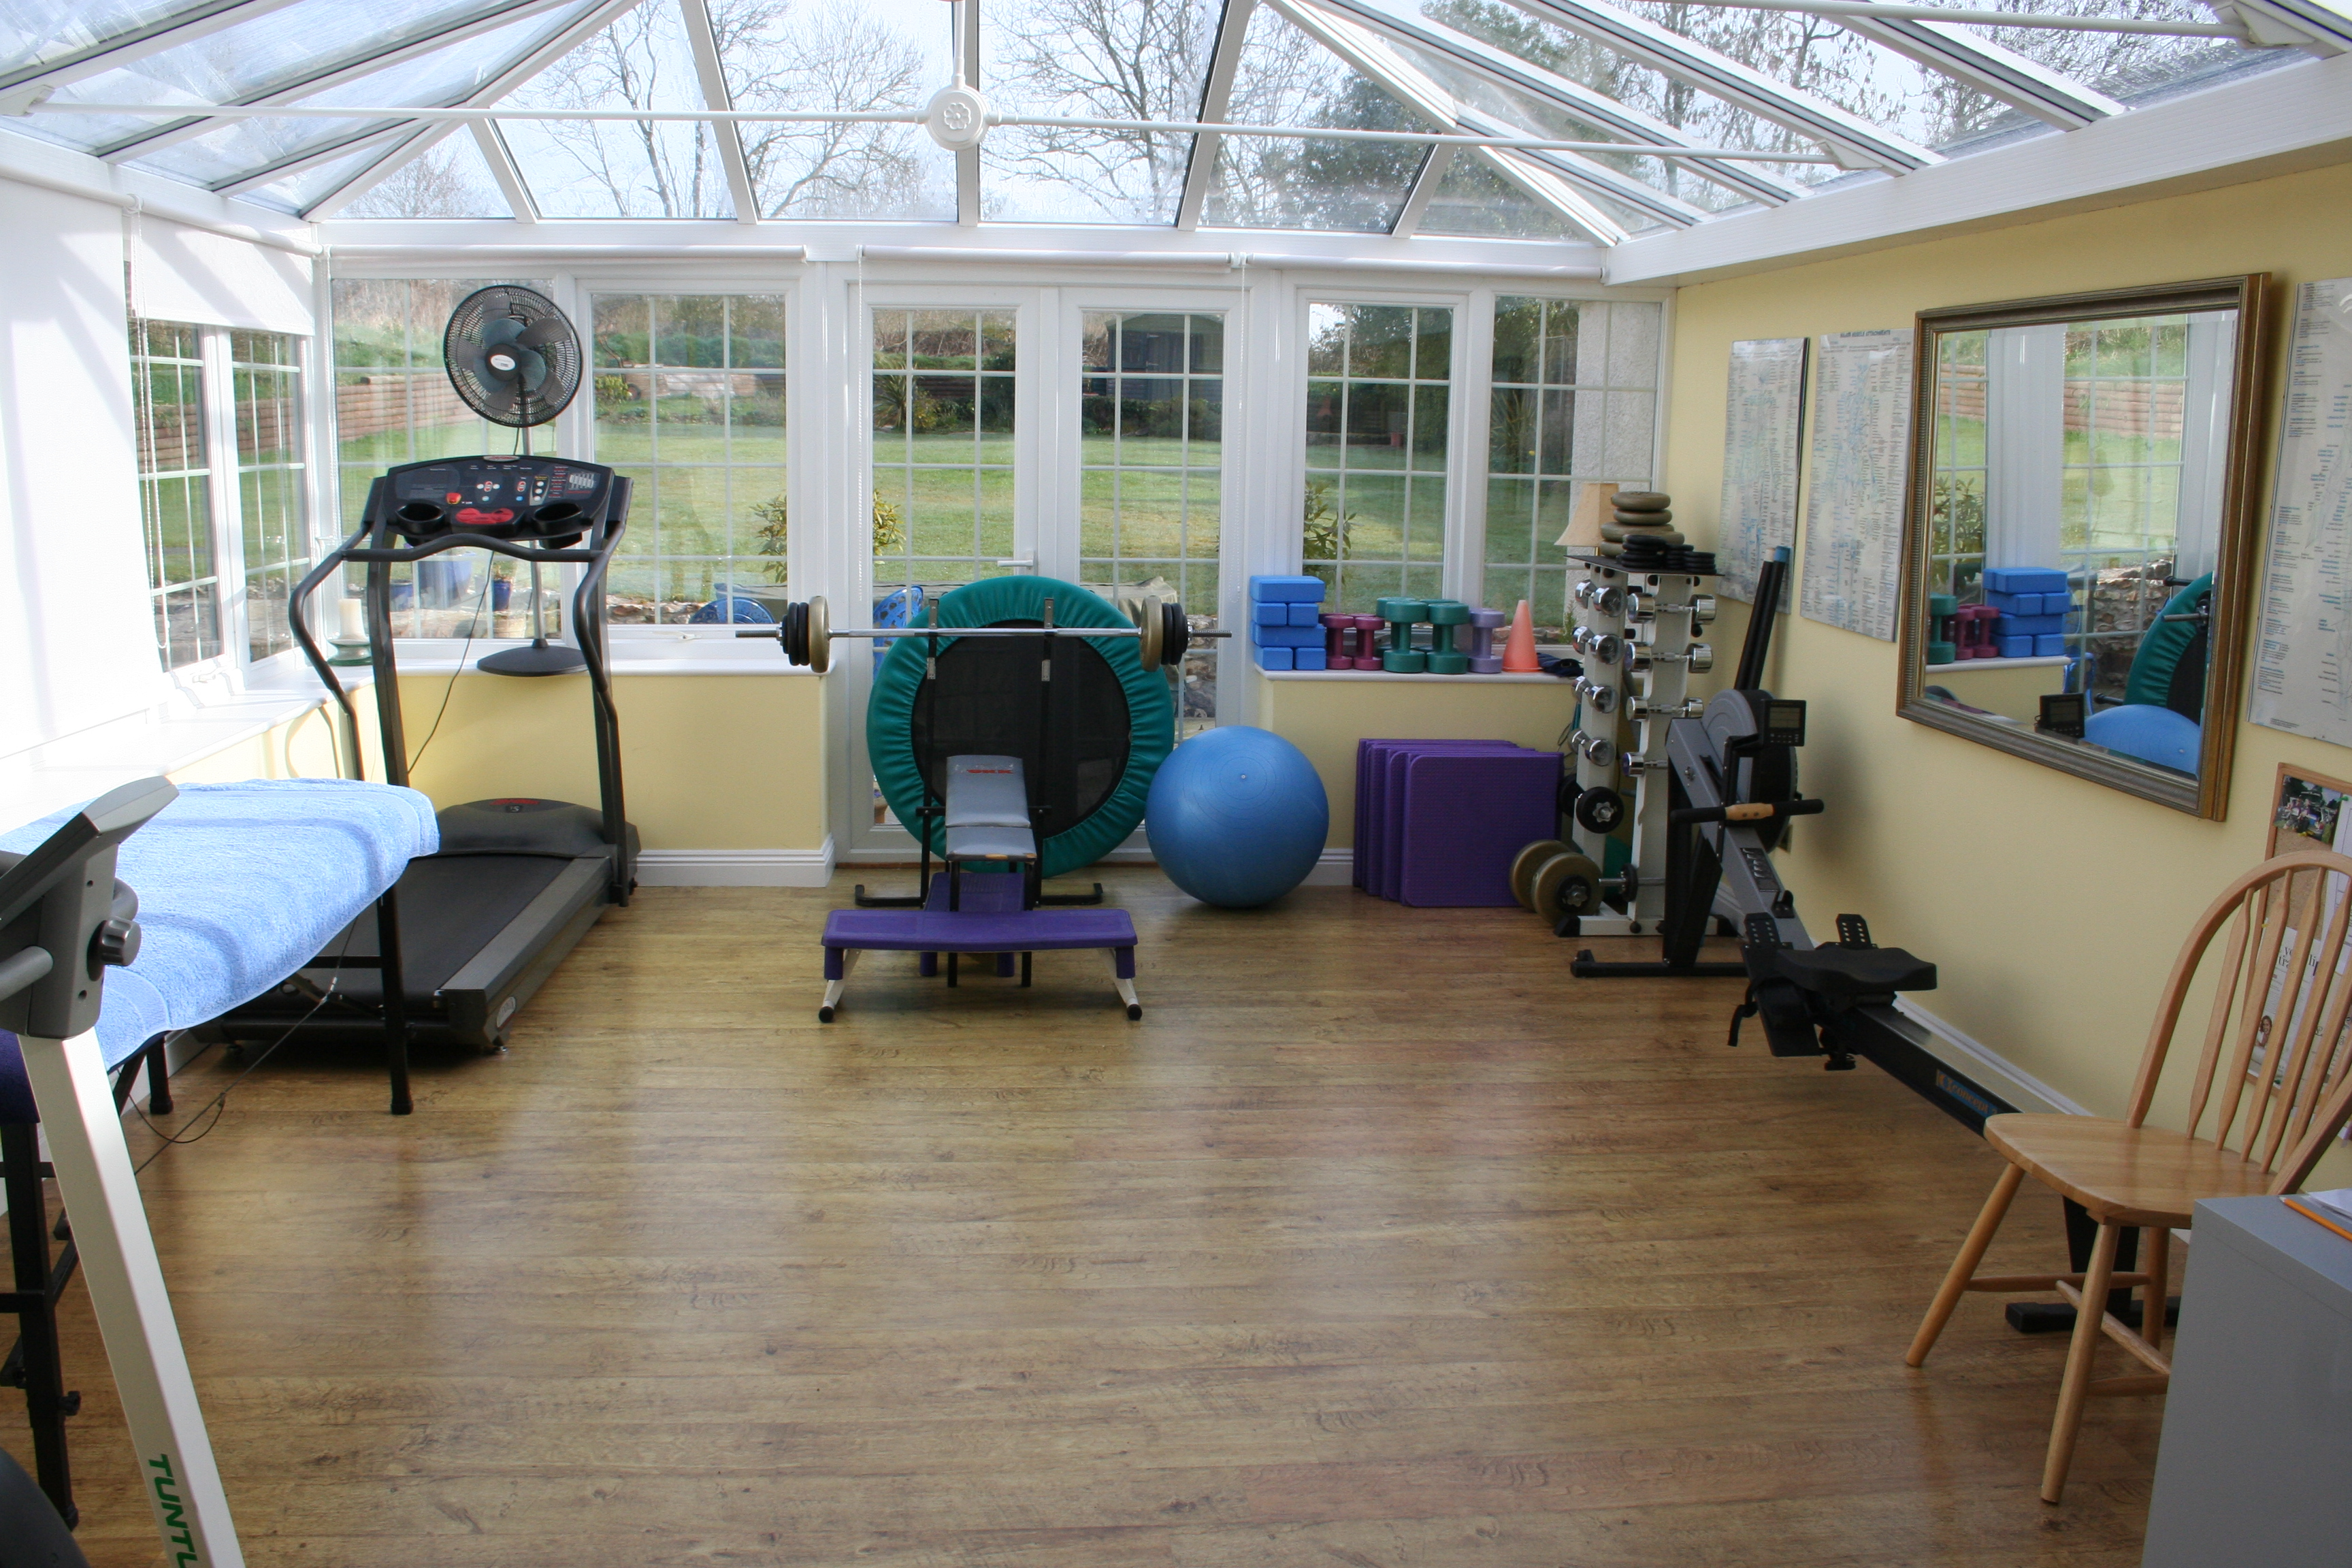 Lindsay's Gym at East Devon Health and Fitness